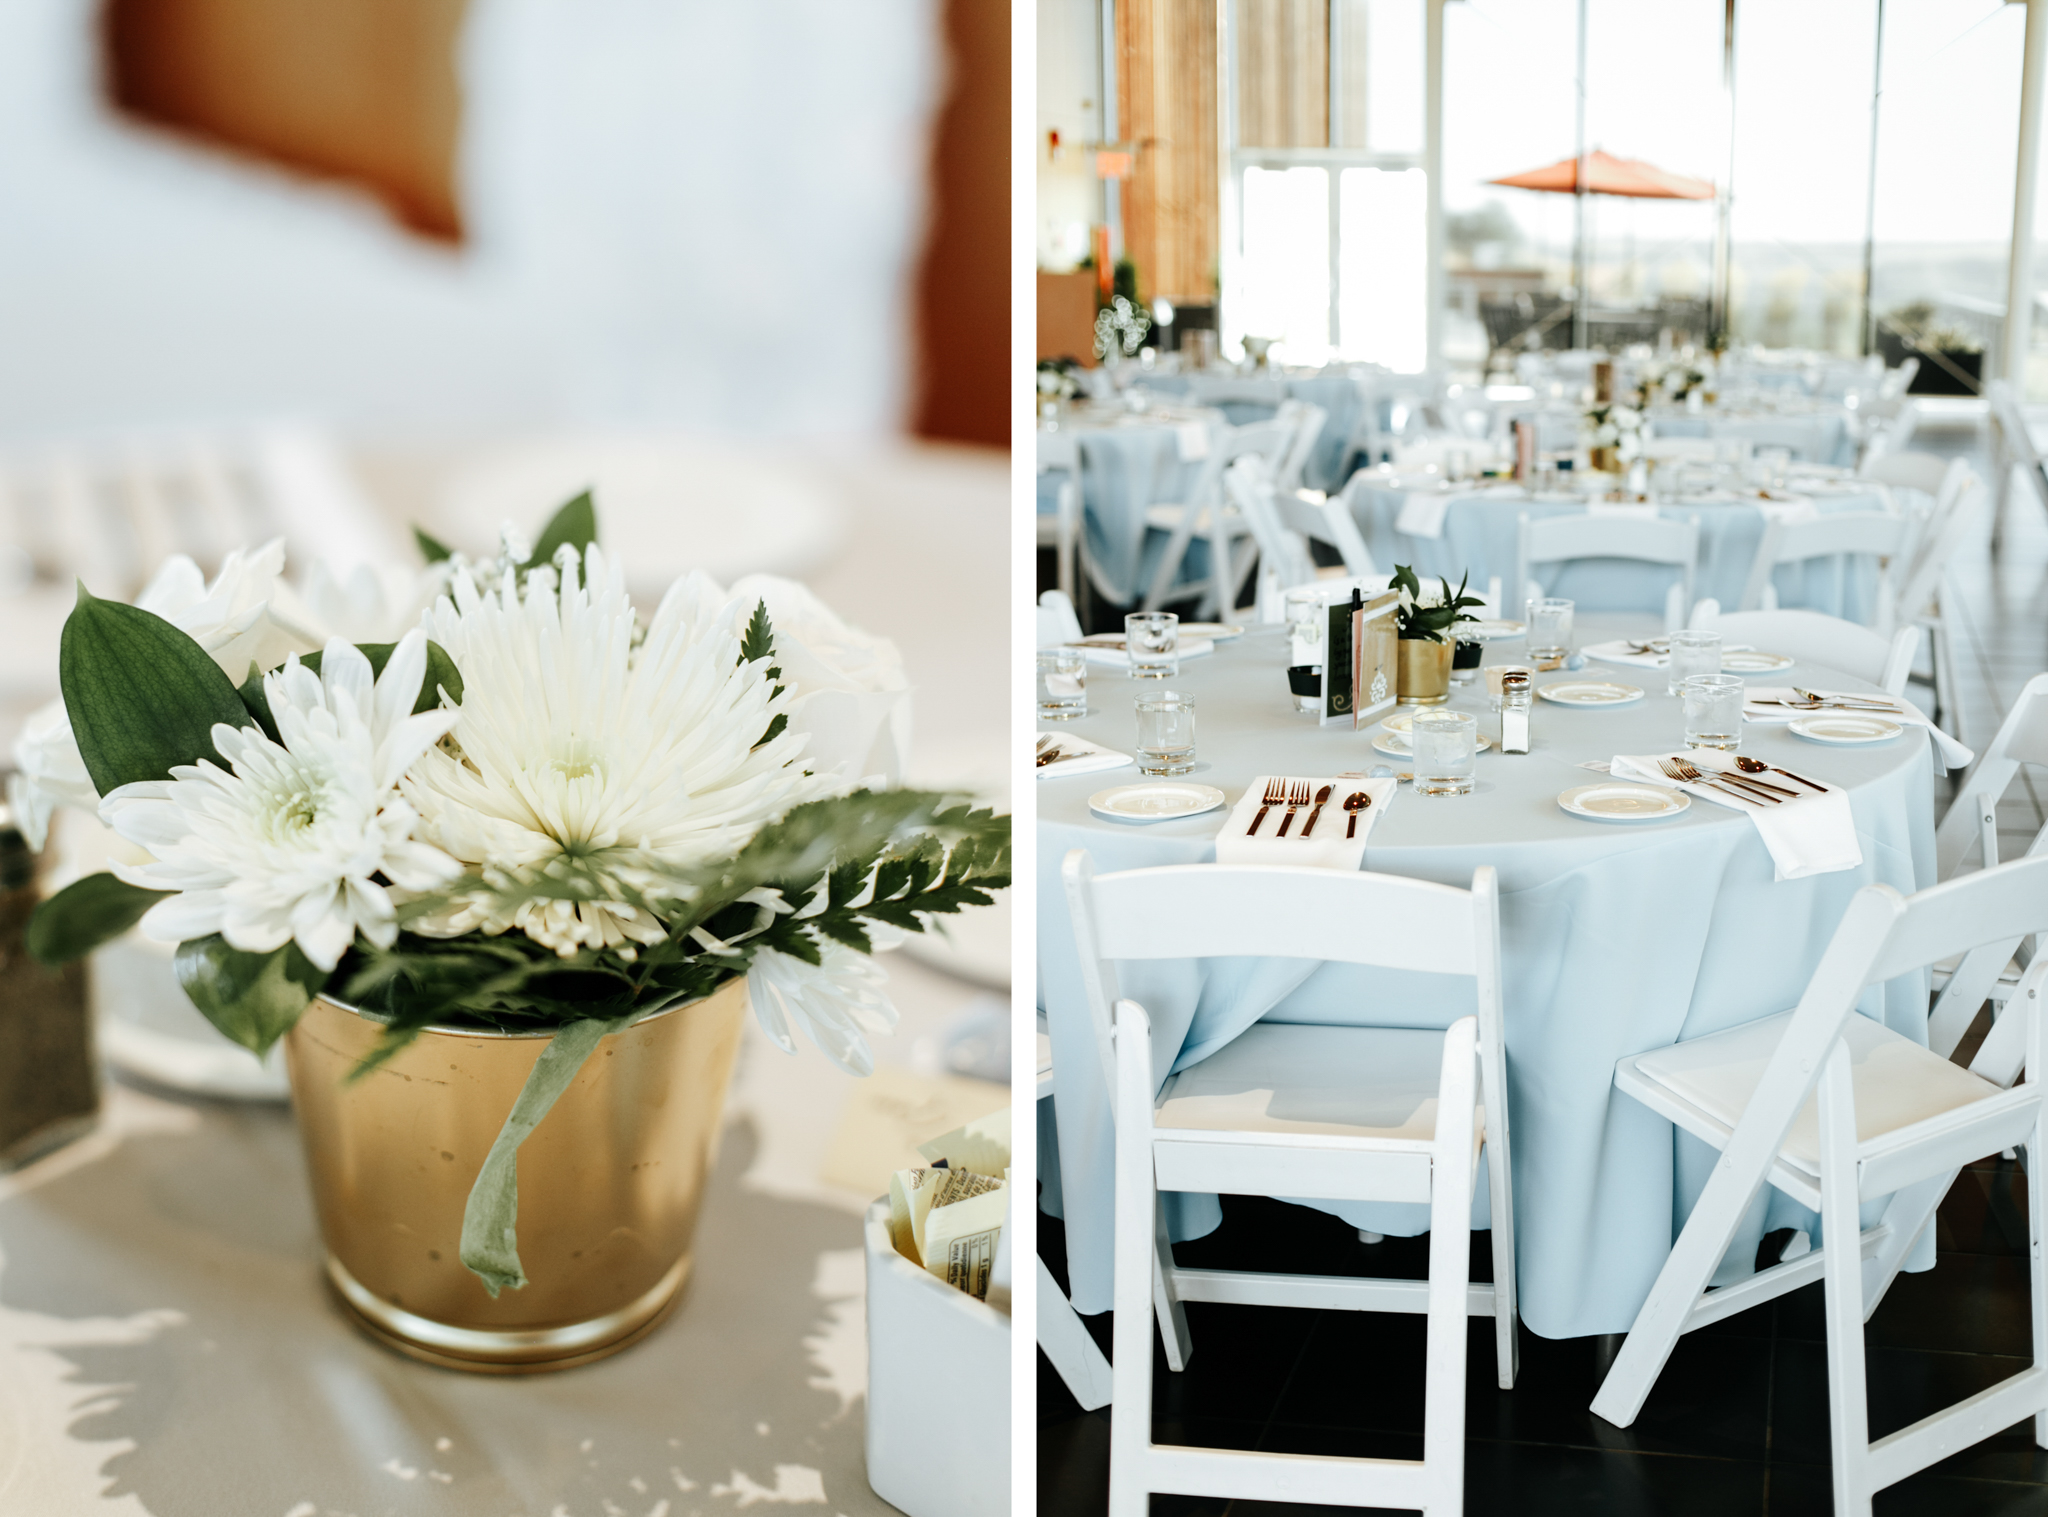 lethbridge-wedding-photographer-love-and-be-loved-photography-trent-danielle-galt-reception-picture-image-photo-169.jpg